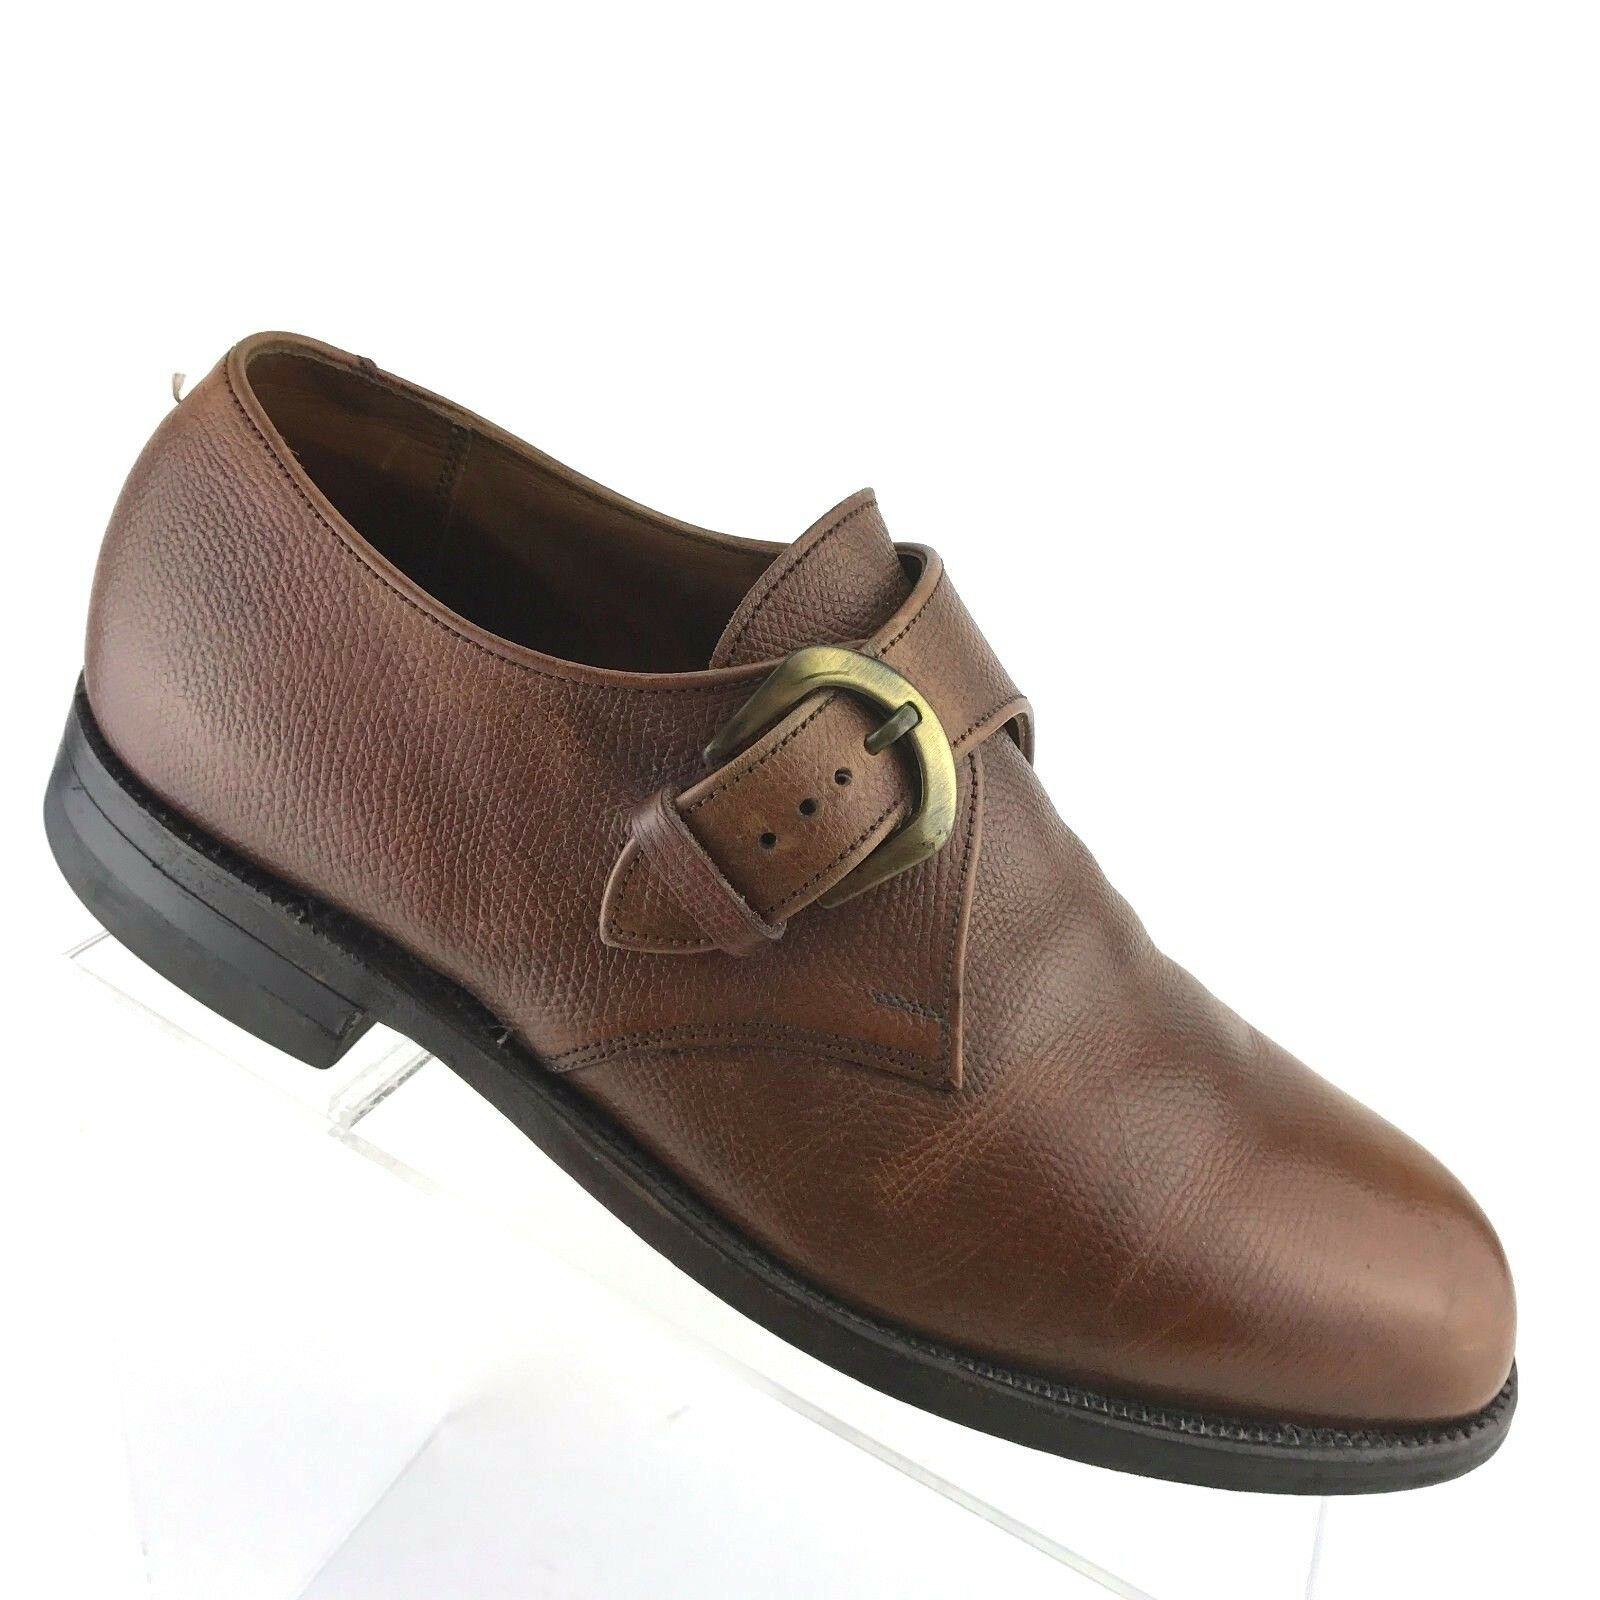 FootJoy Brown Pelle Monk Strap Buckle Pebble Grain Uomo Shoe SIZE 7.5 E/EEE